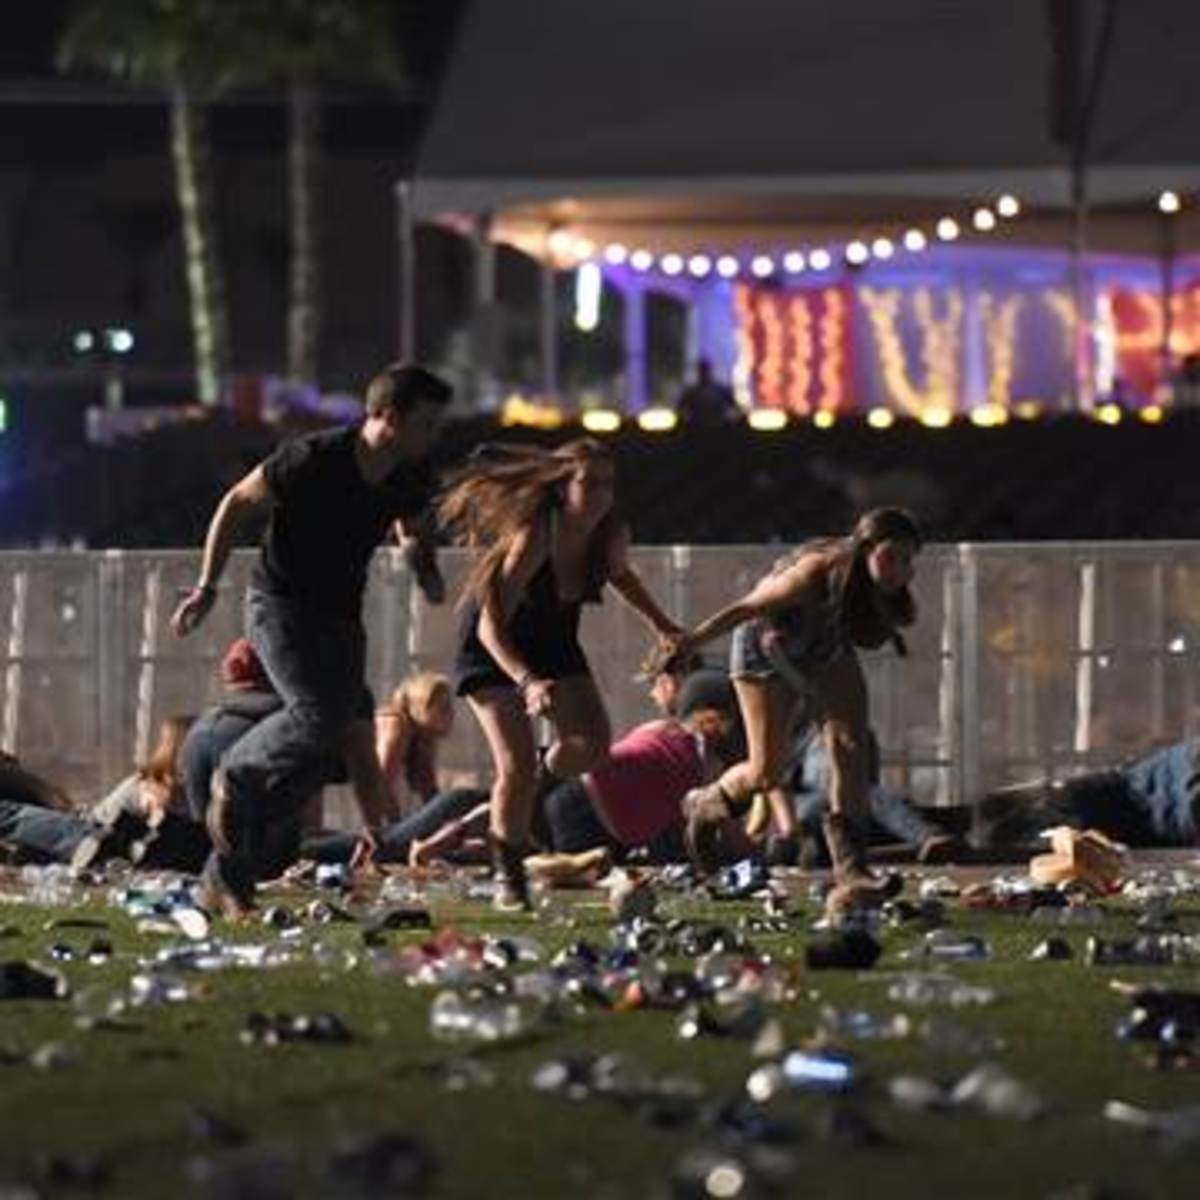 What is happening to our world that concertgoers are no longer safe?